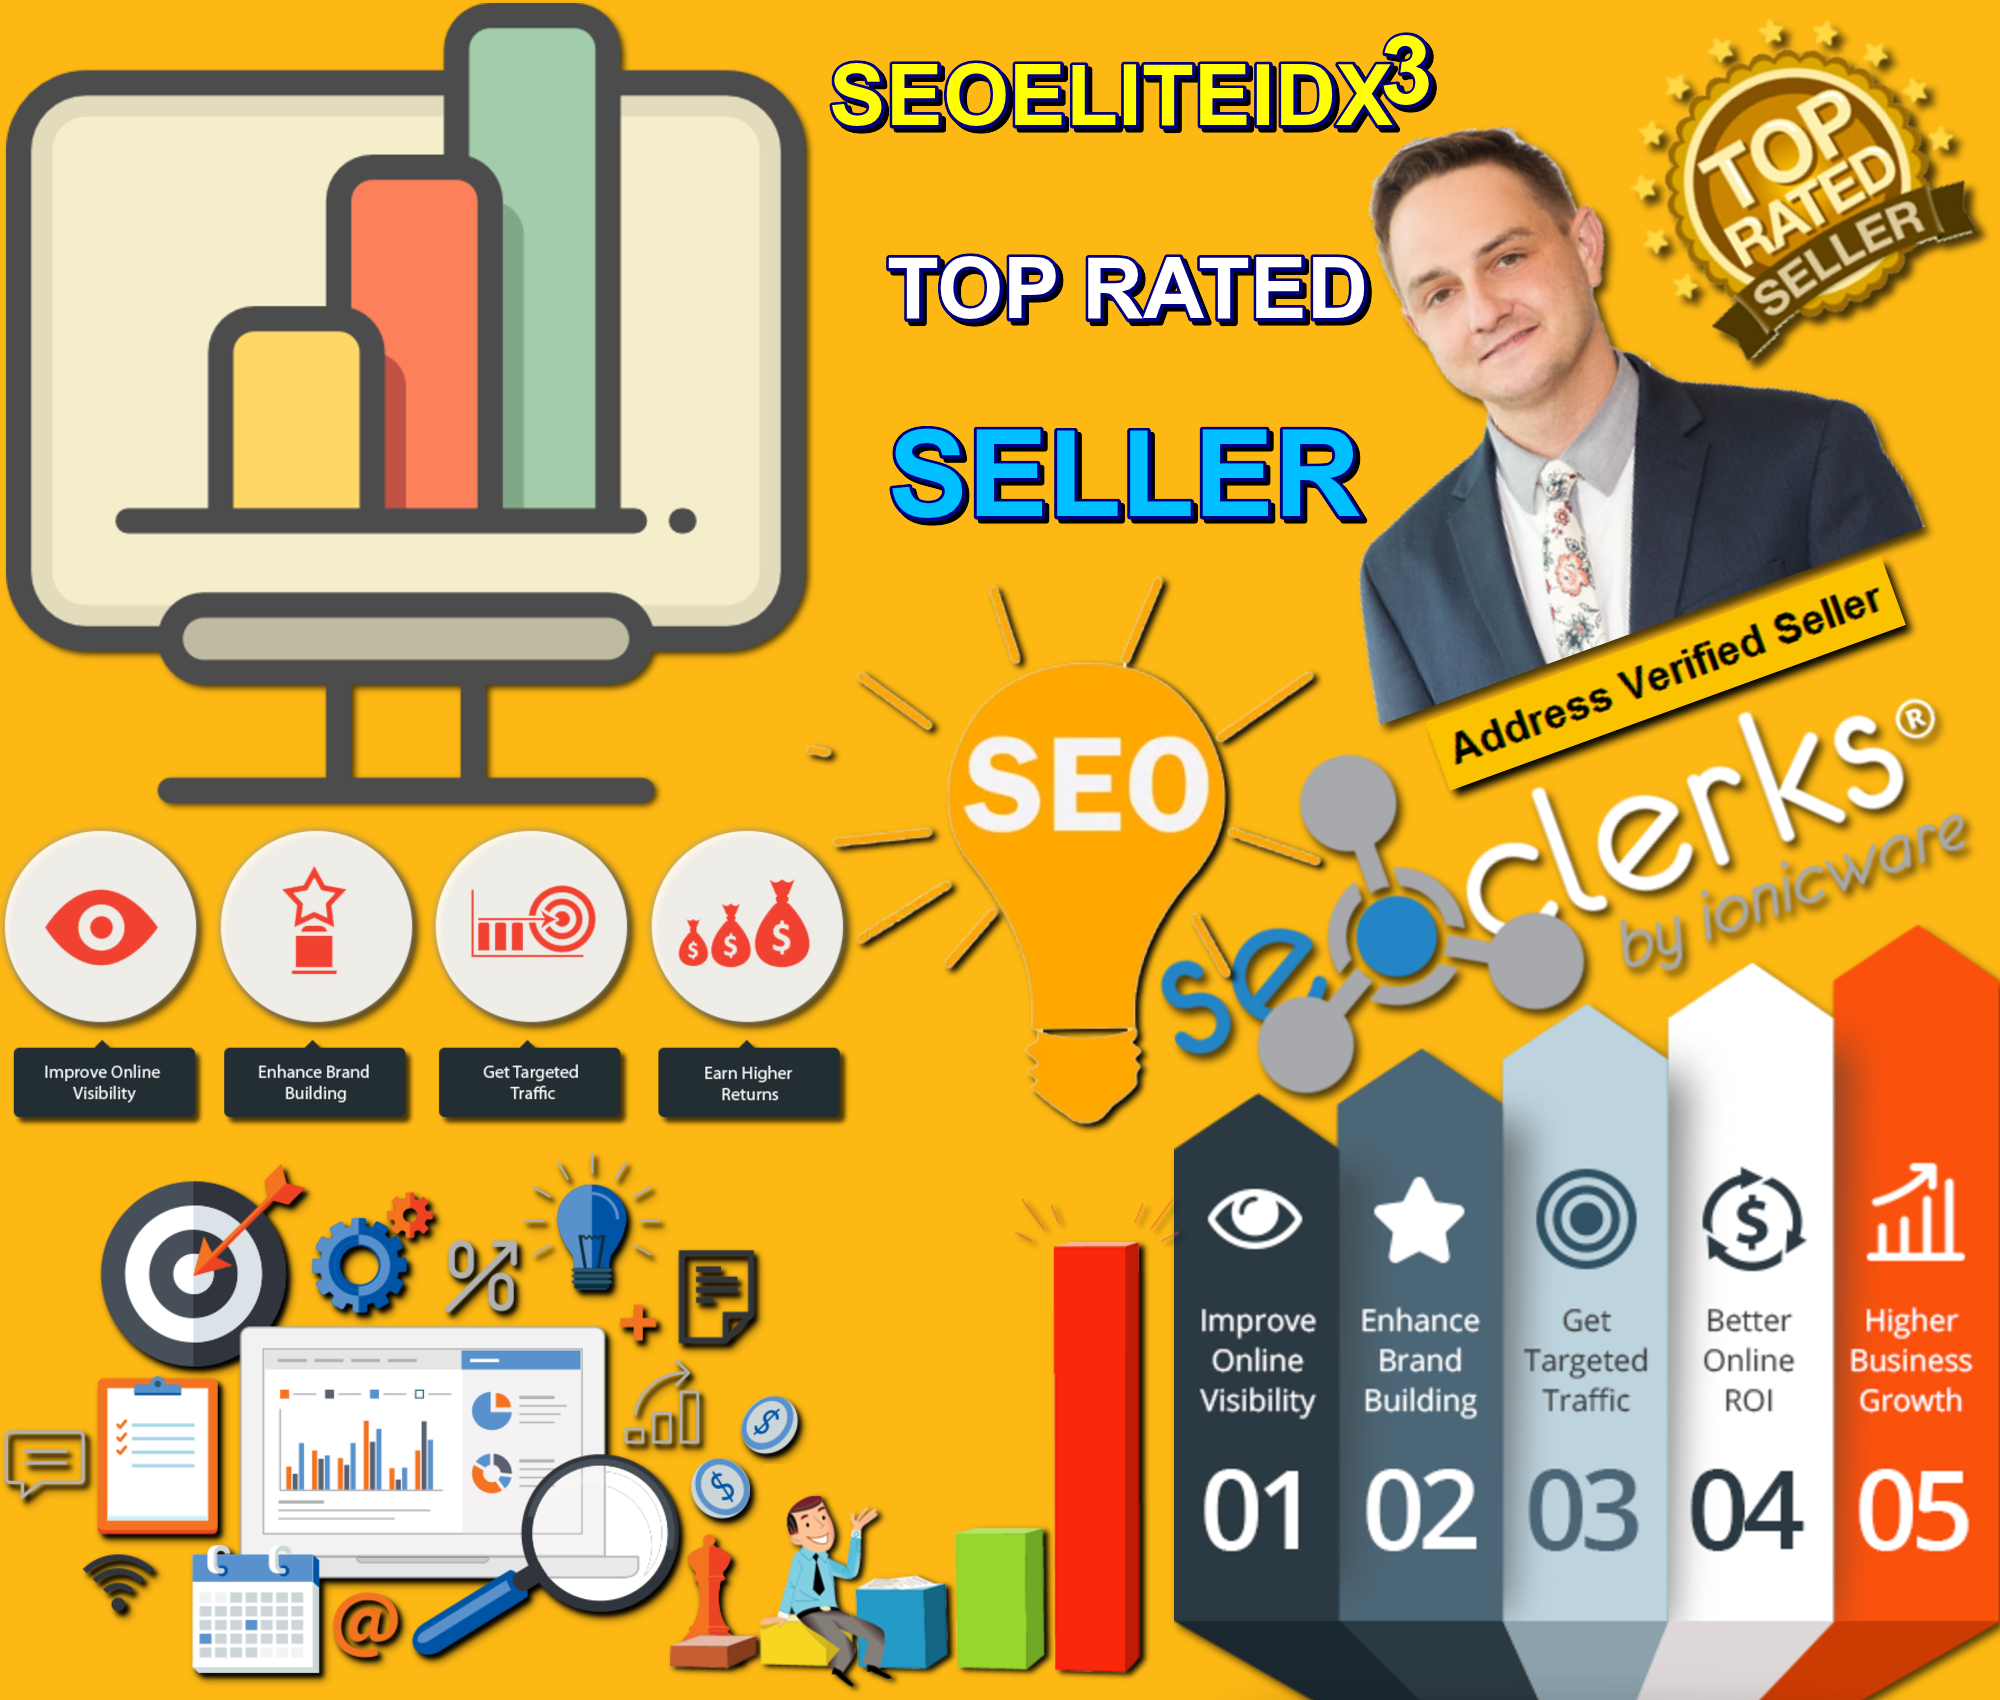 Top 10 Powerful Get benefit 100 Million Visitors Worldwide USA Website Social Media Marketing SEO Traffic Elevate Your Ranking Boost Help To Ranking 1st Page On Google Guaranteed